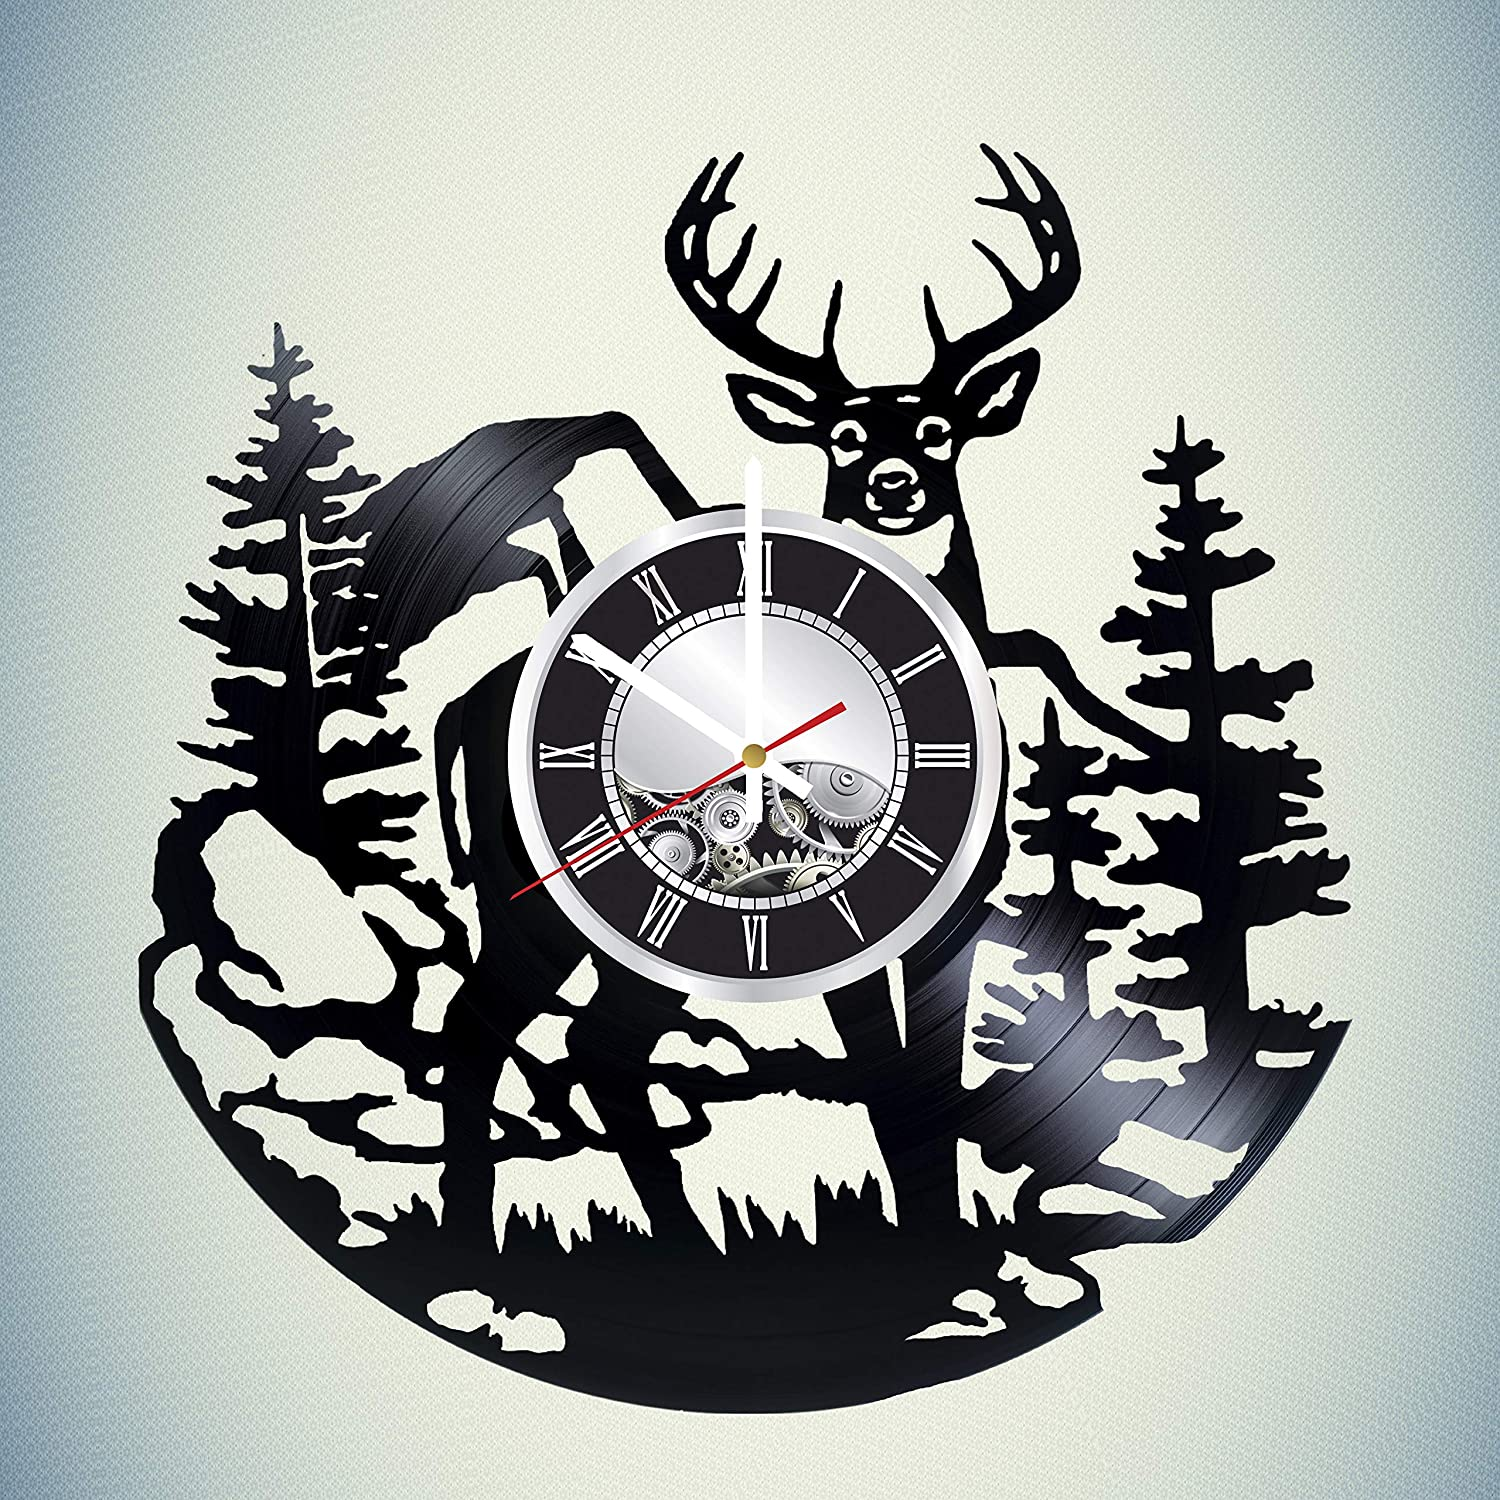 Deer Vinyl Wall Clock - Vintage Record - Original Gift for Any Occasion - Unique Home Decor - Quartz Non Ticking Mechanism - Great Wall Decor for Living Room Kitchen Bedroom - Wall Art Design